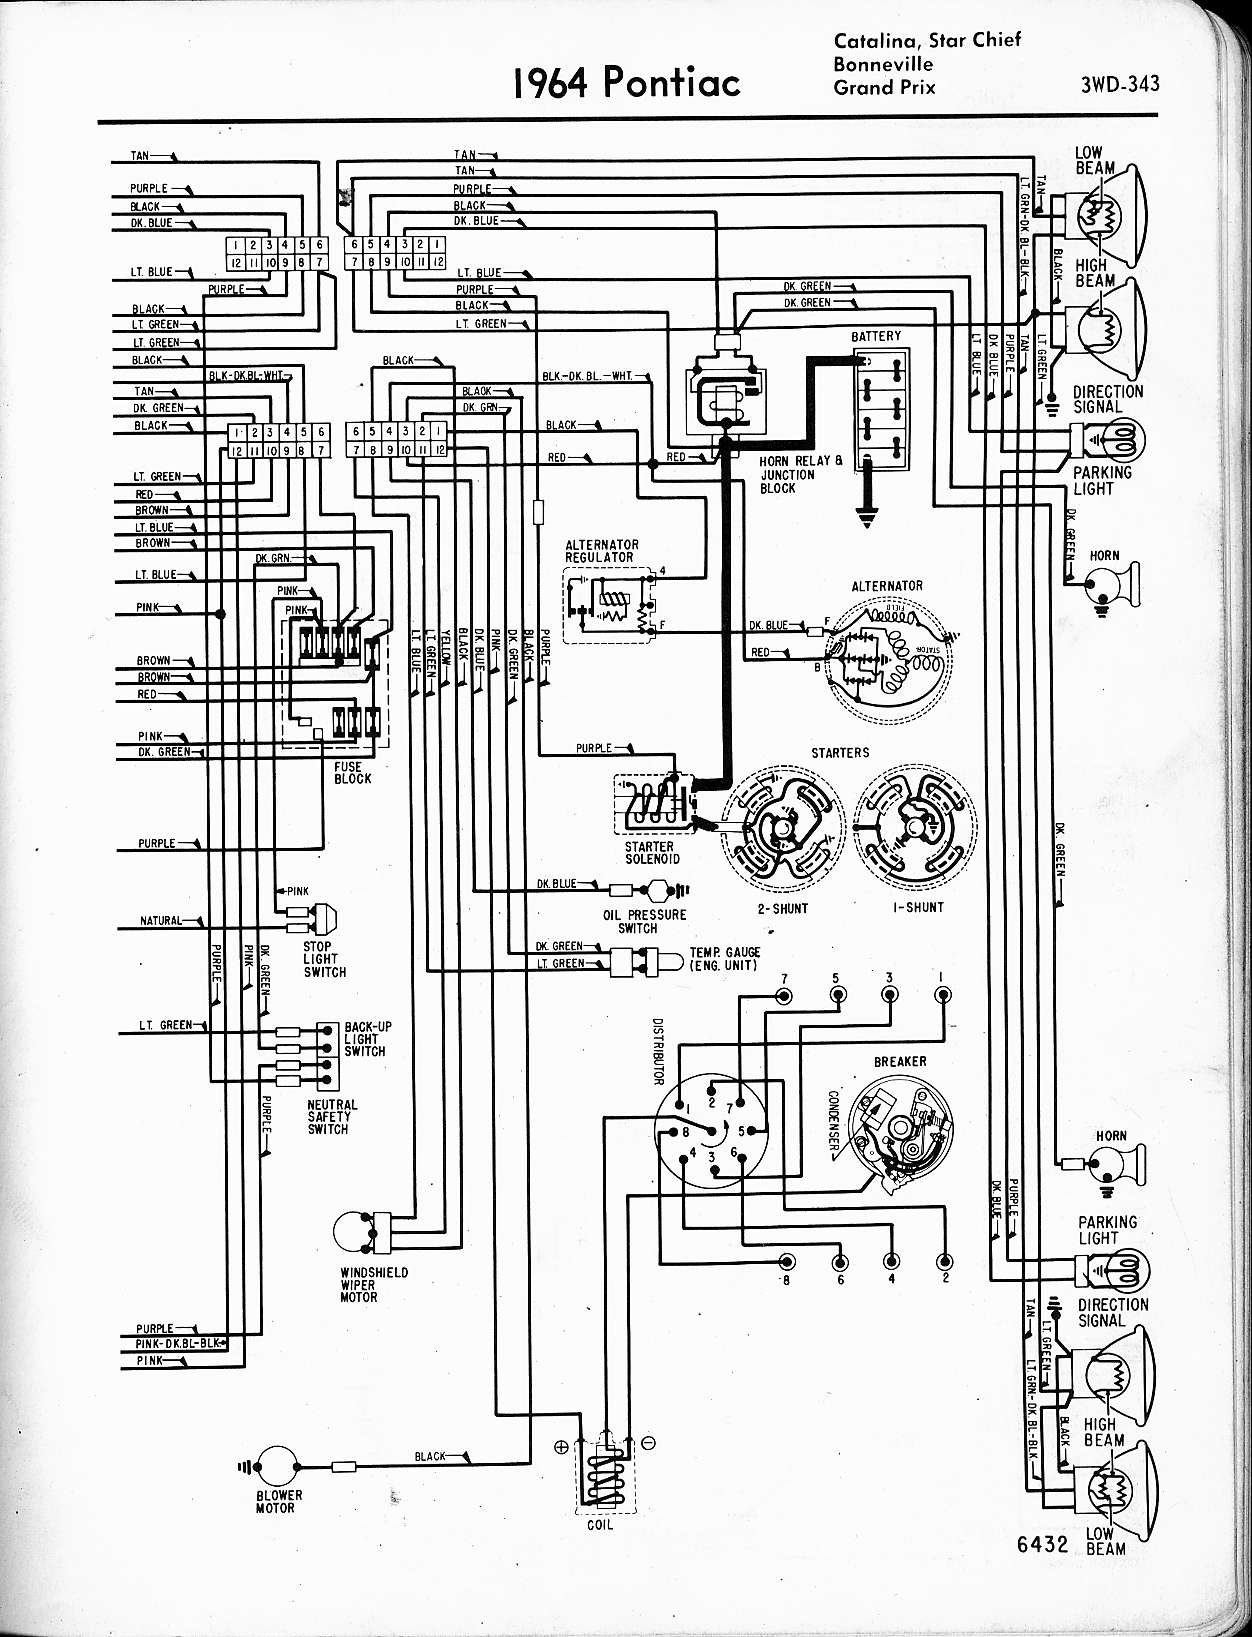 69 Camaro Wiper Motor Diagram Wiring Wiring Diagram Images